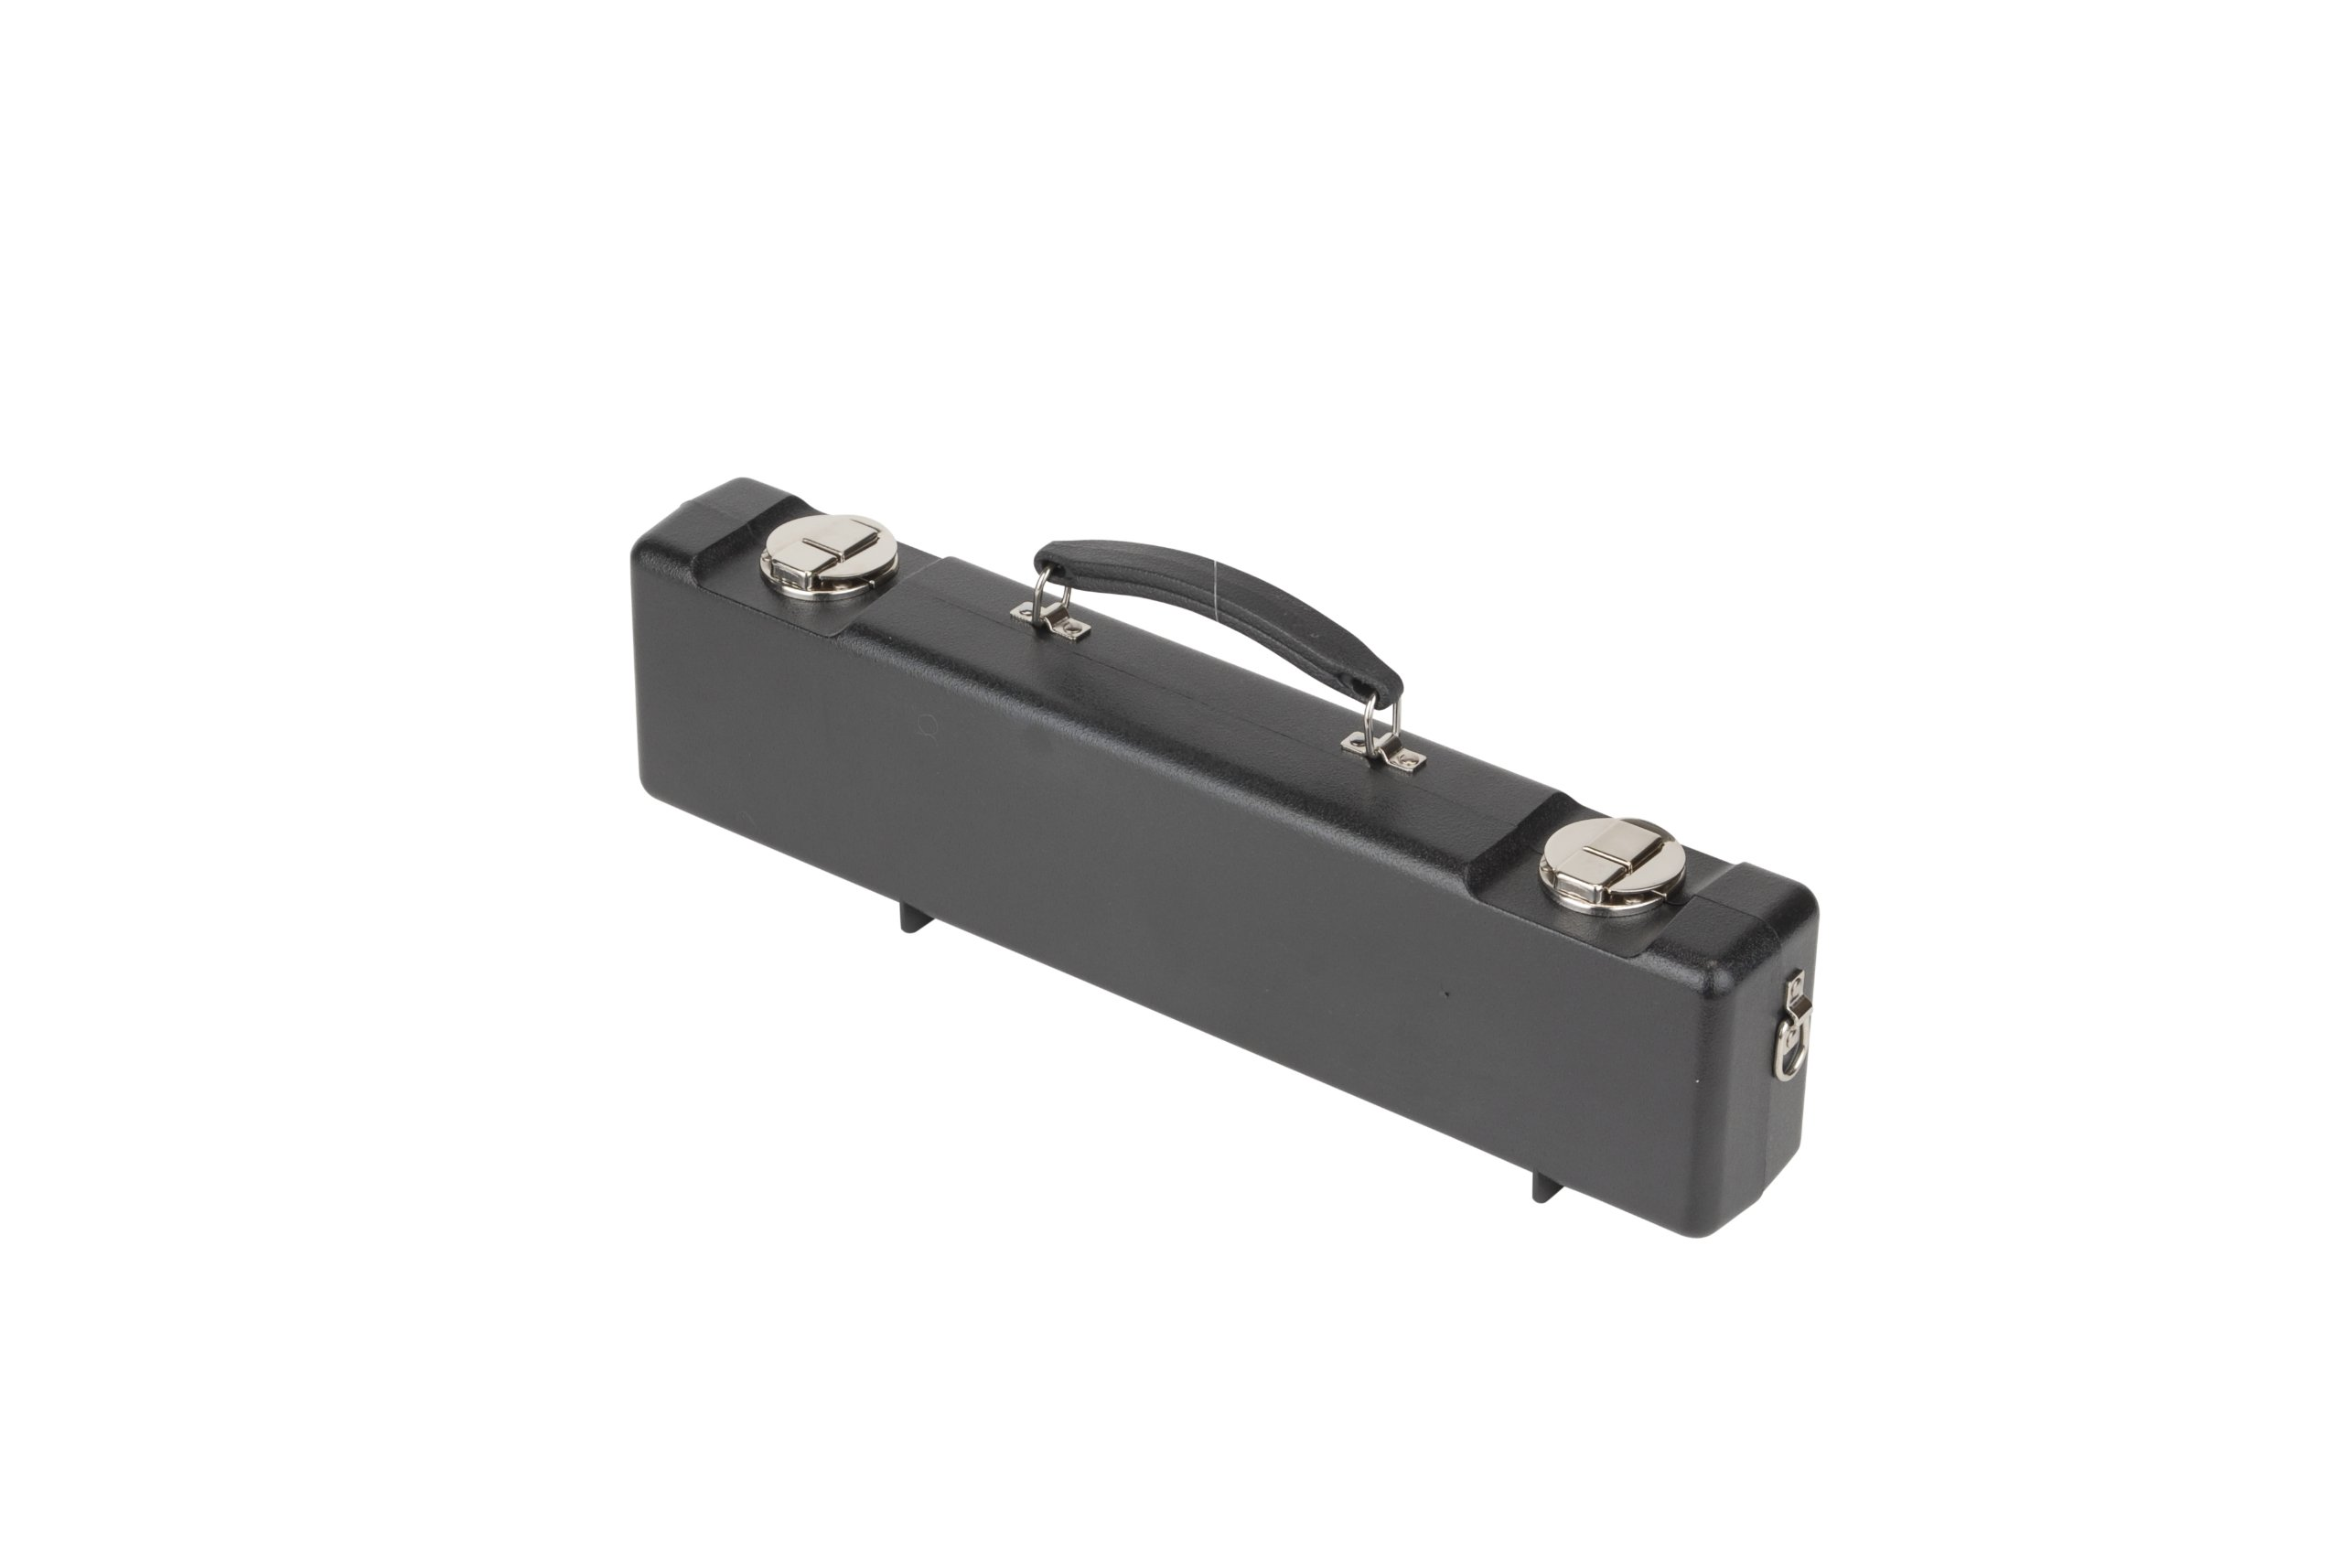 SKB Flute B Foot Joint Case, Revised Interior